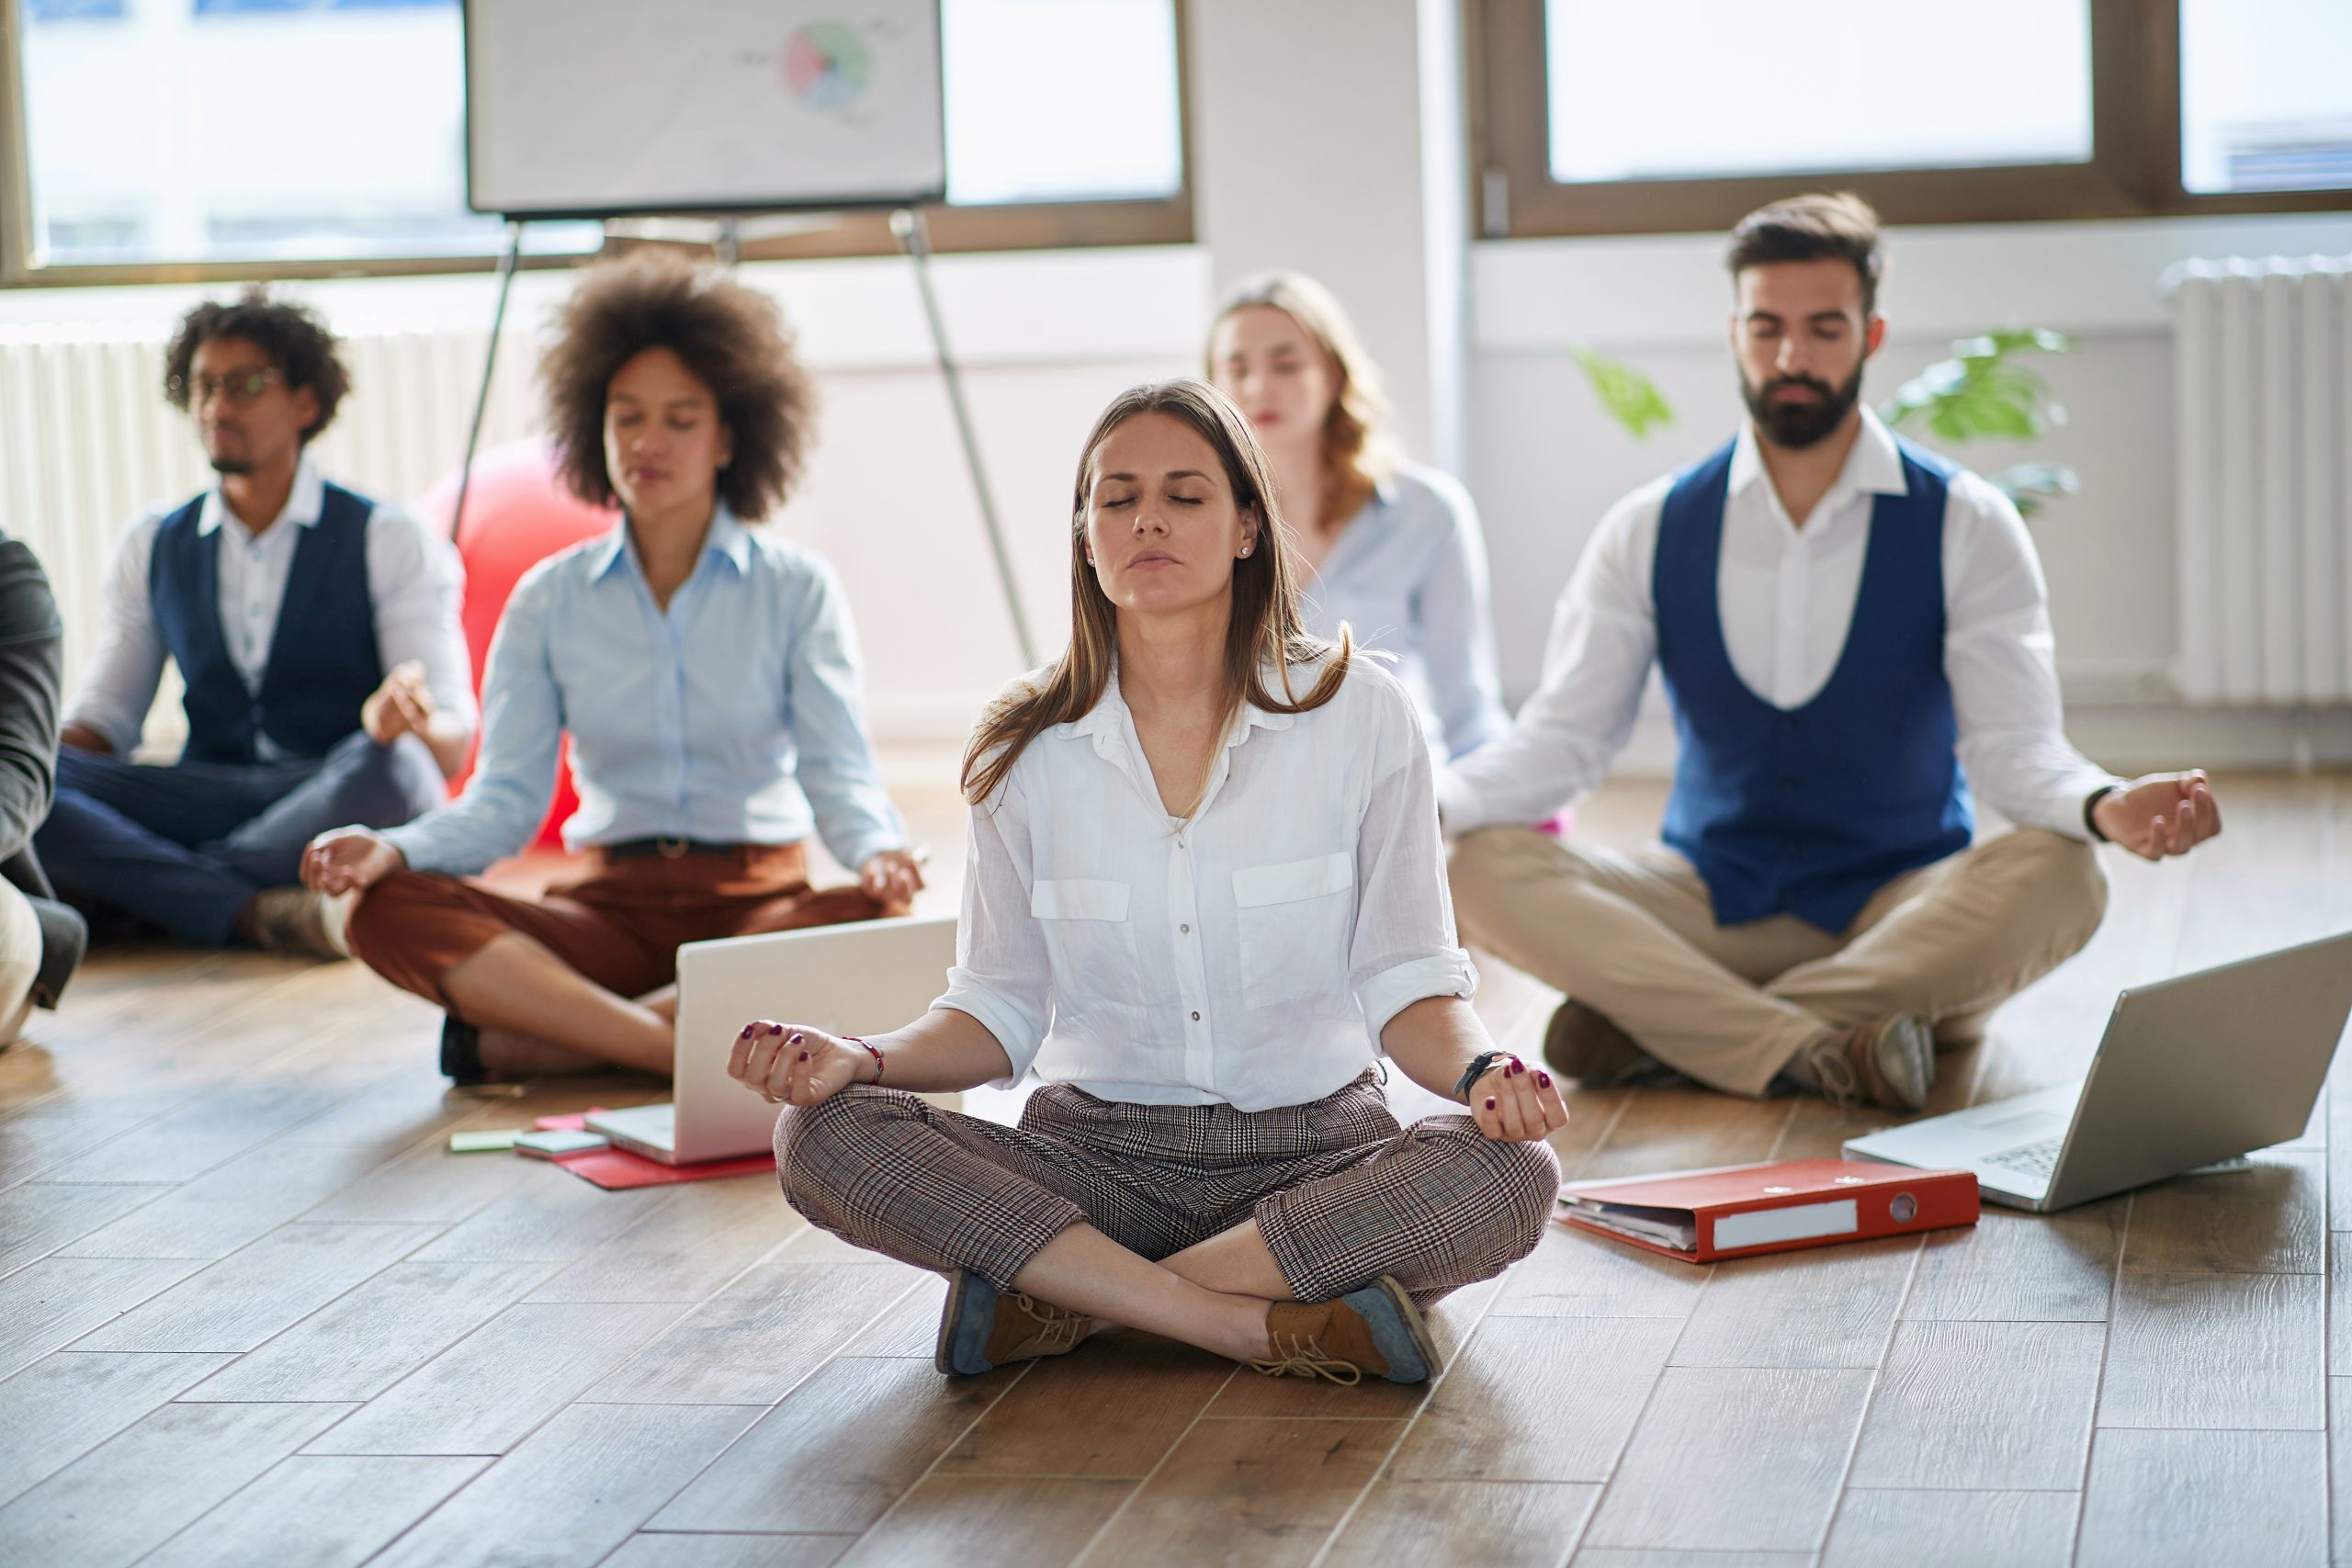 Businesswoman meditating at work.group of business coworkers meditating together.